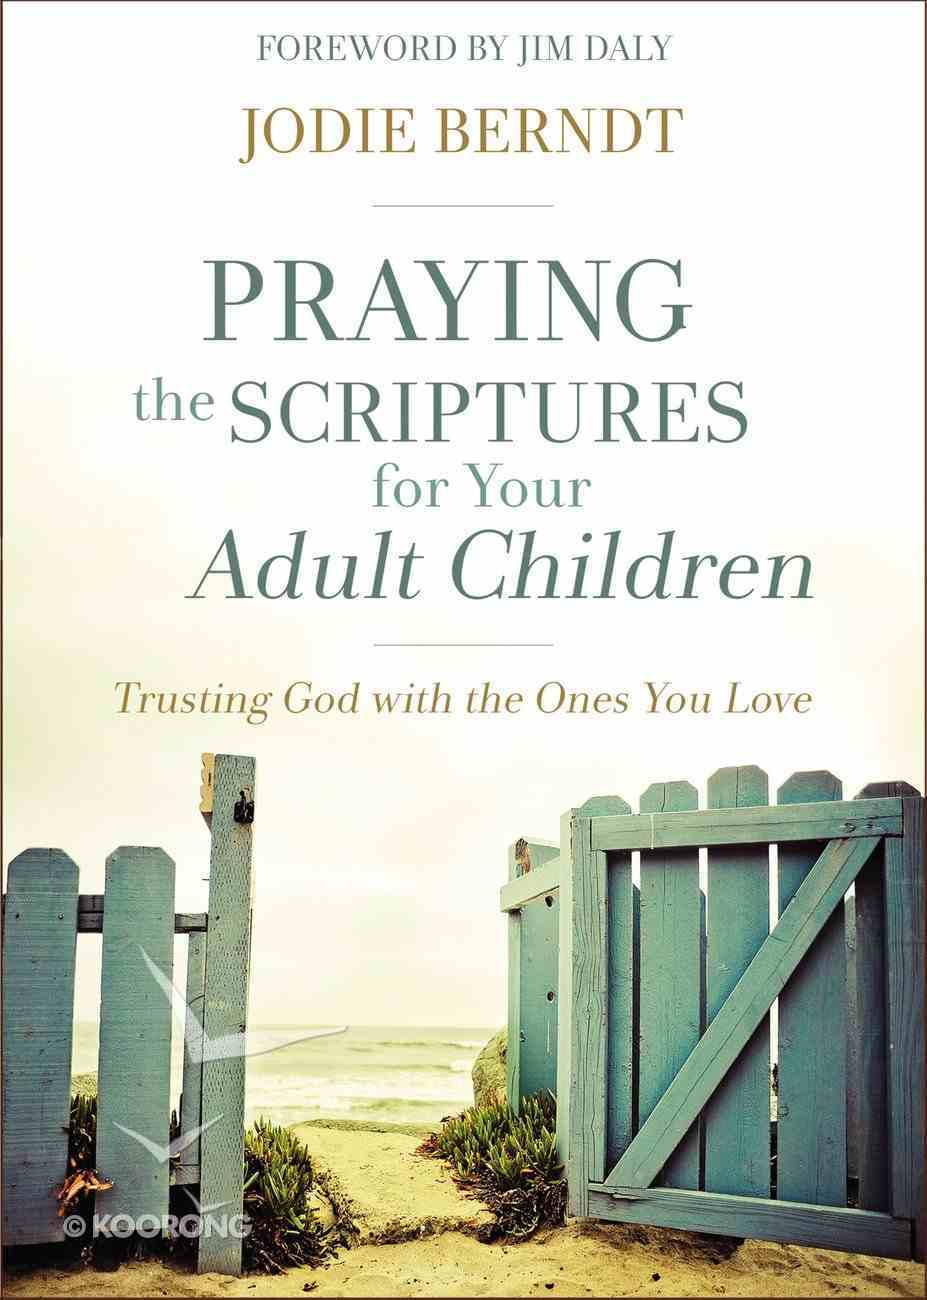 Praying the Scriptures For Your Adult Children: Trusting God With the Ones You Love Paperback